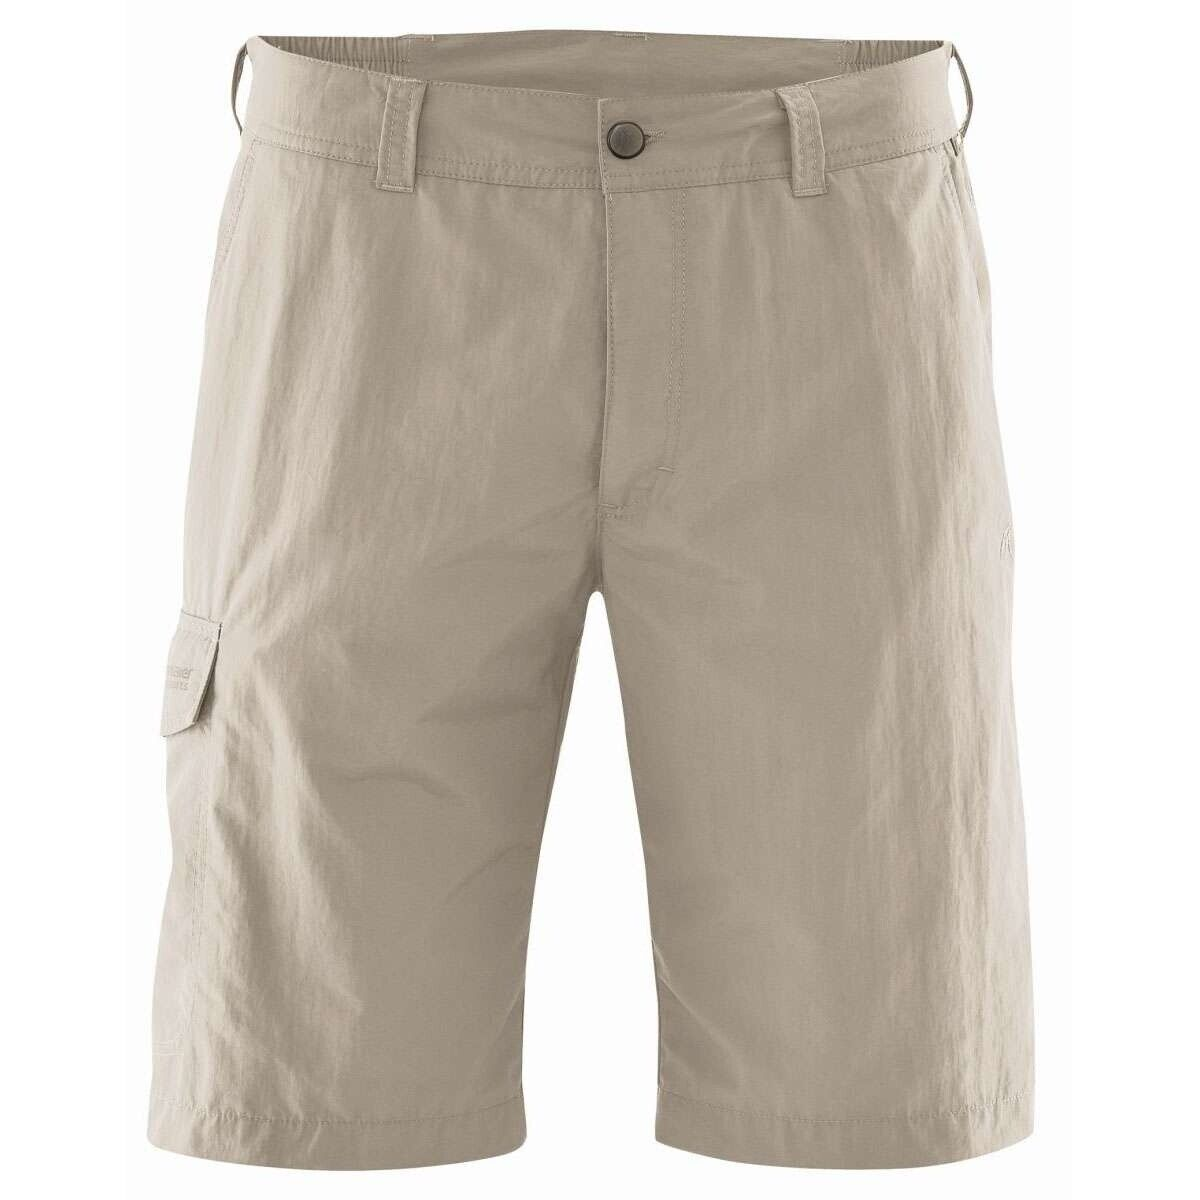 Maier Sports main Bermuda Hiking Pants Short Beige